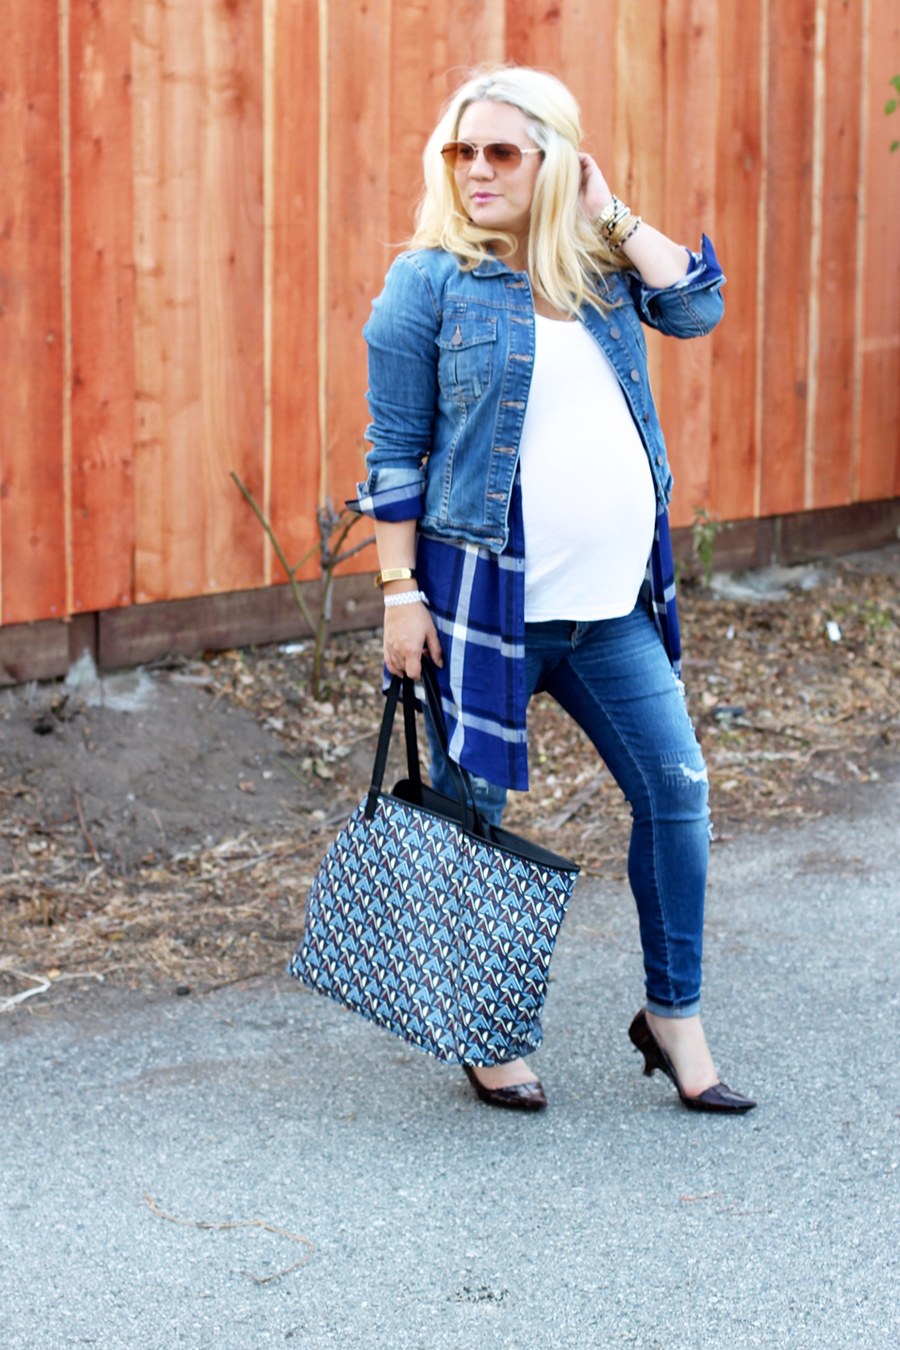 Plaid Shirtdress-Maternity Style-Styling Your Baby Bump-Styling Tips-Pregnancy Style-Have Need Want 8